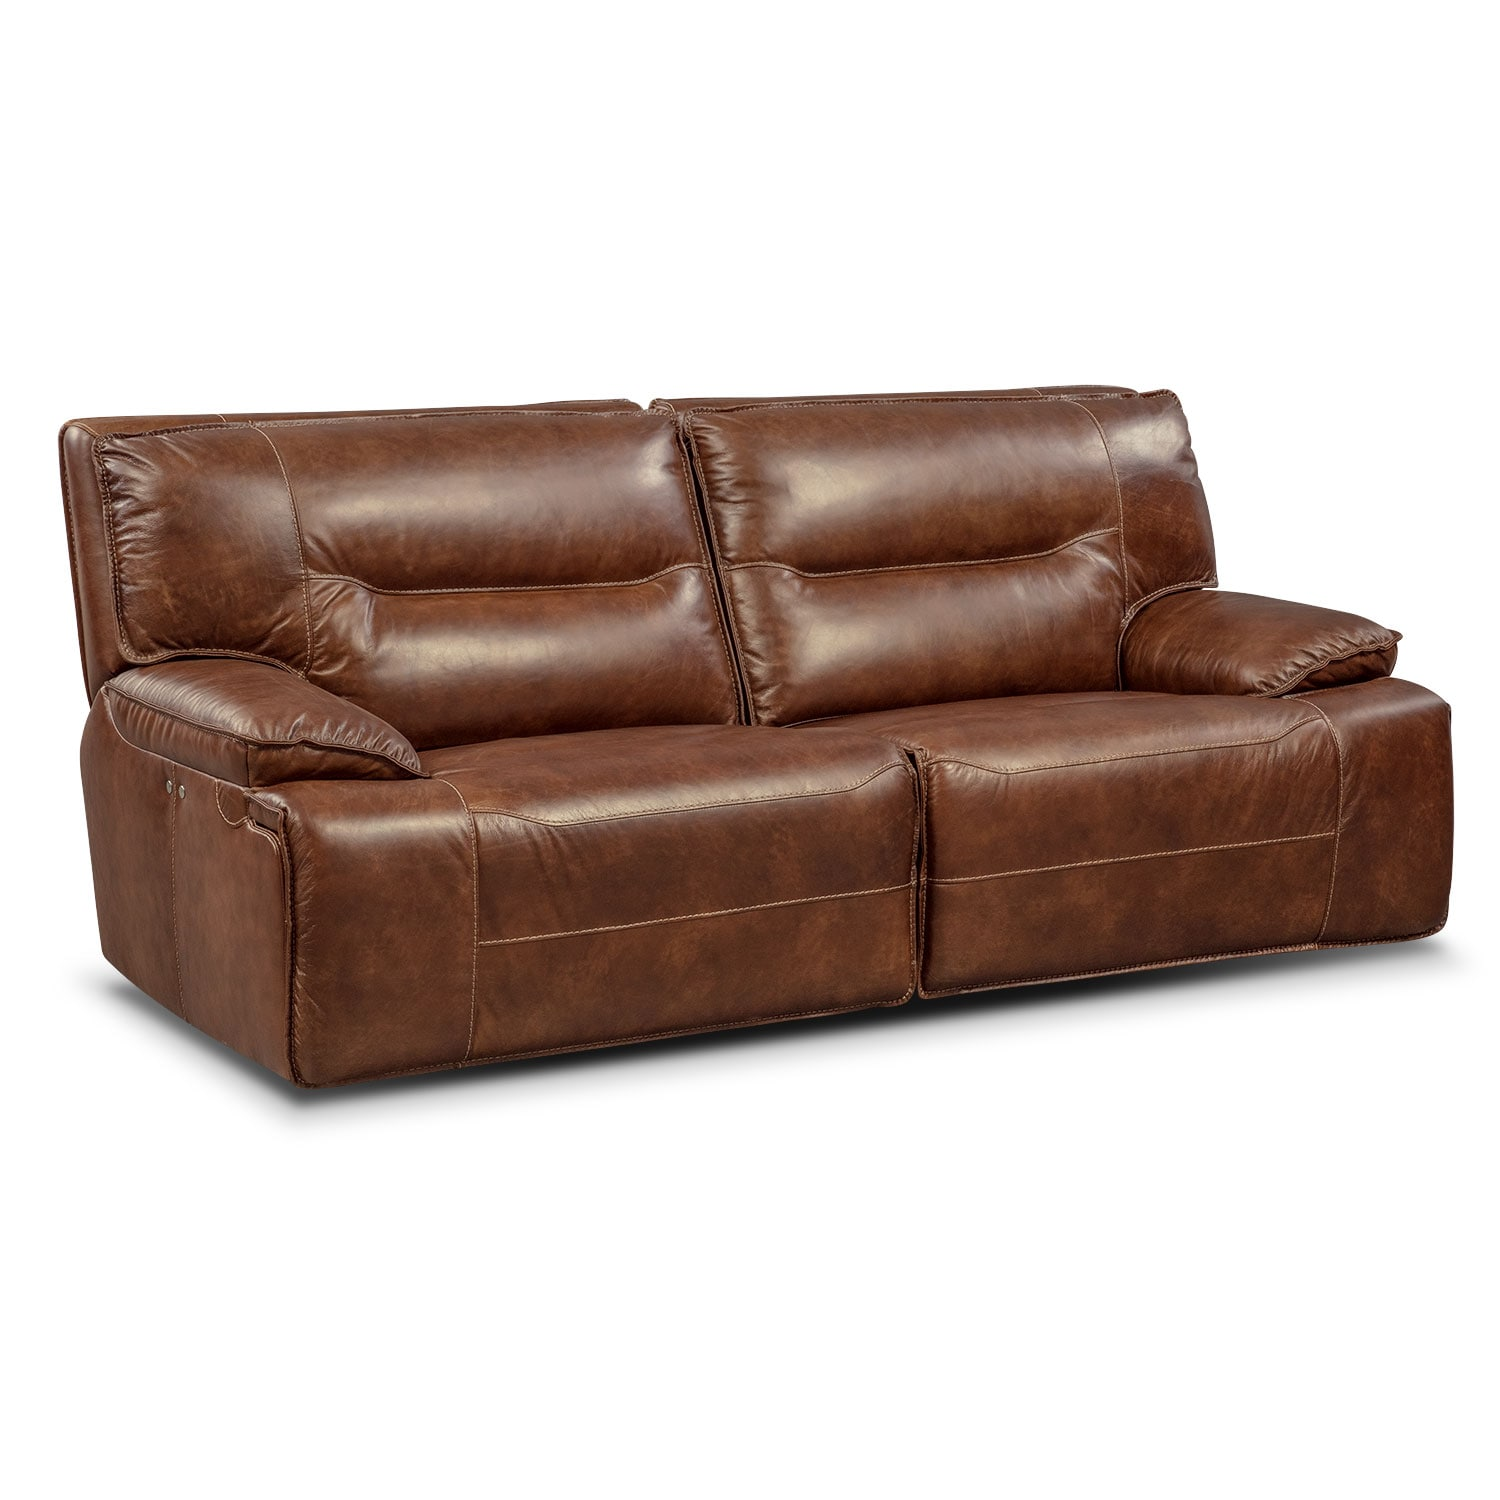 Living Room Furniture - Glenmont 2 Pc. Power Reclining Sofa - Brown